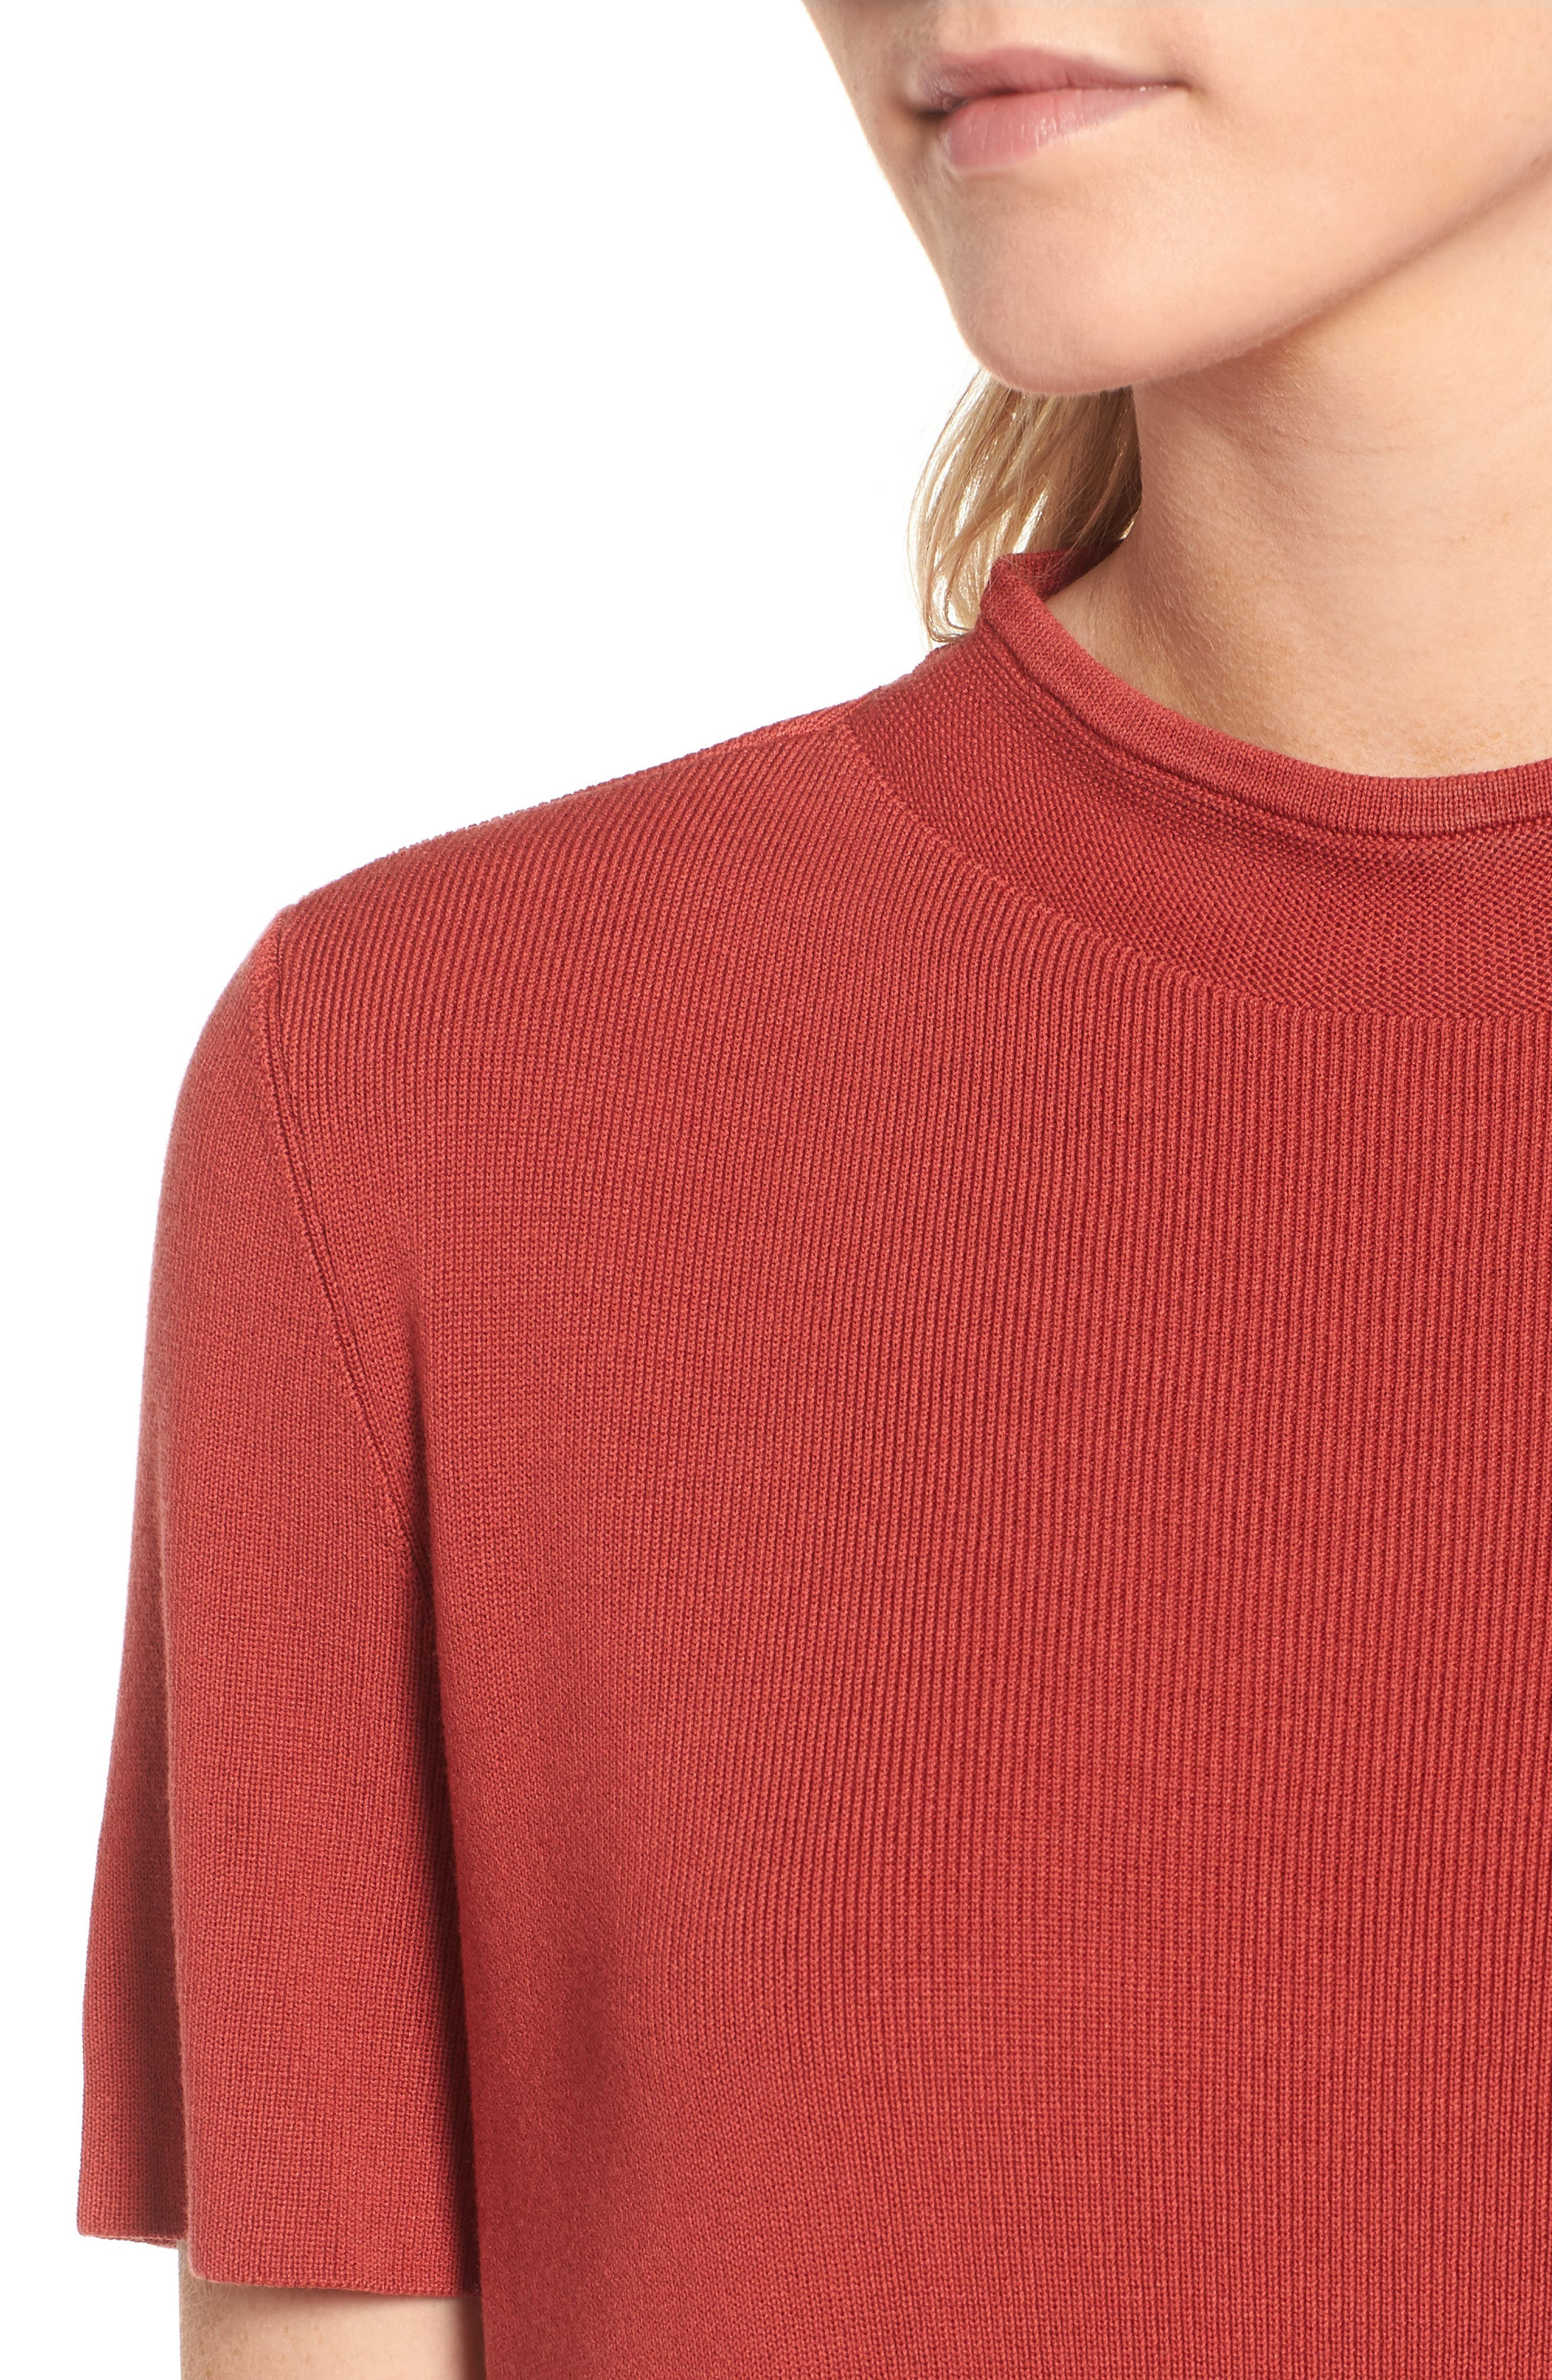 Tencel<sup>®</sup> Lyocell Knit Sweater,                             Alternate thumbnail 4, color,                             Coral Rose